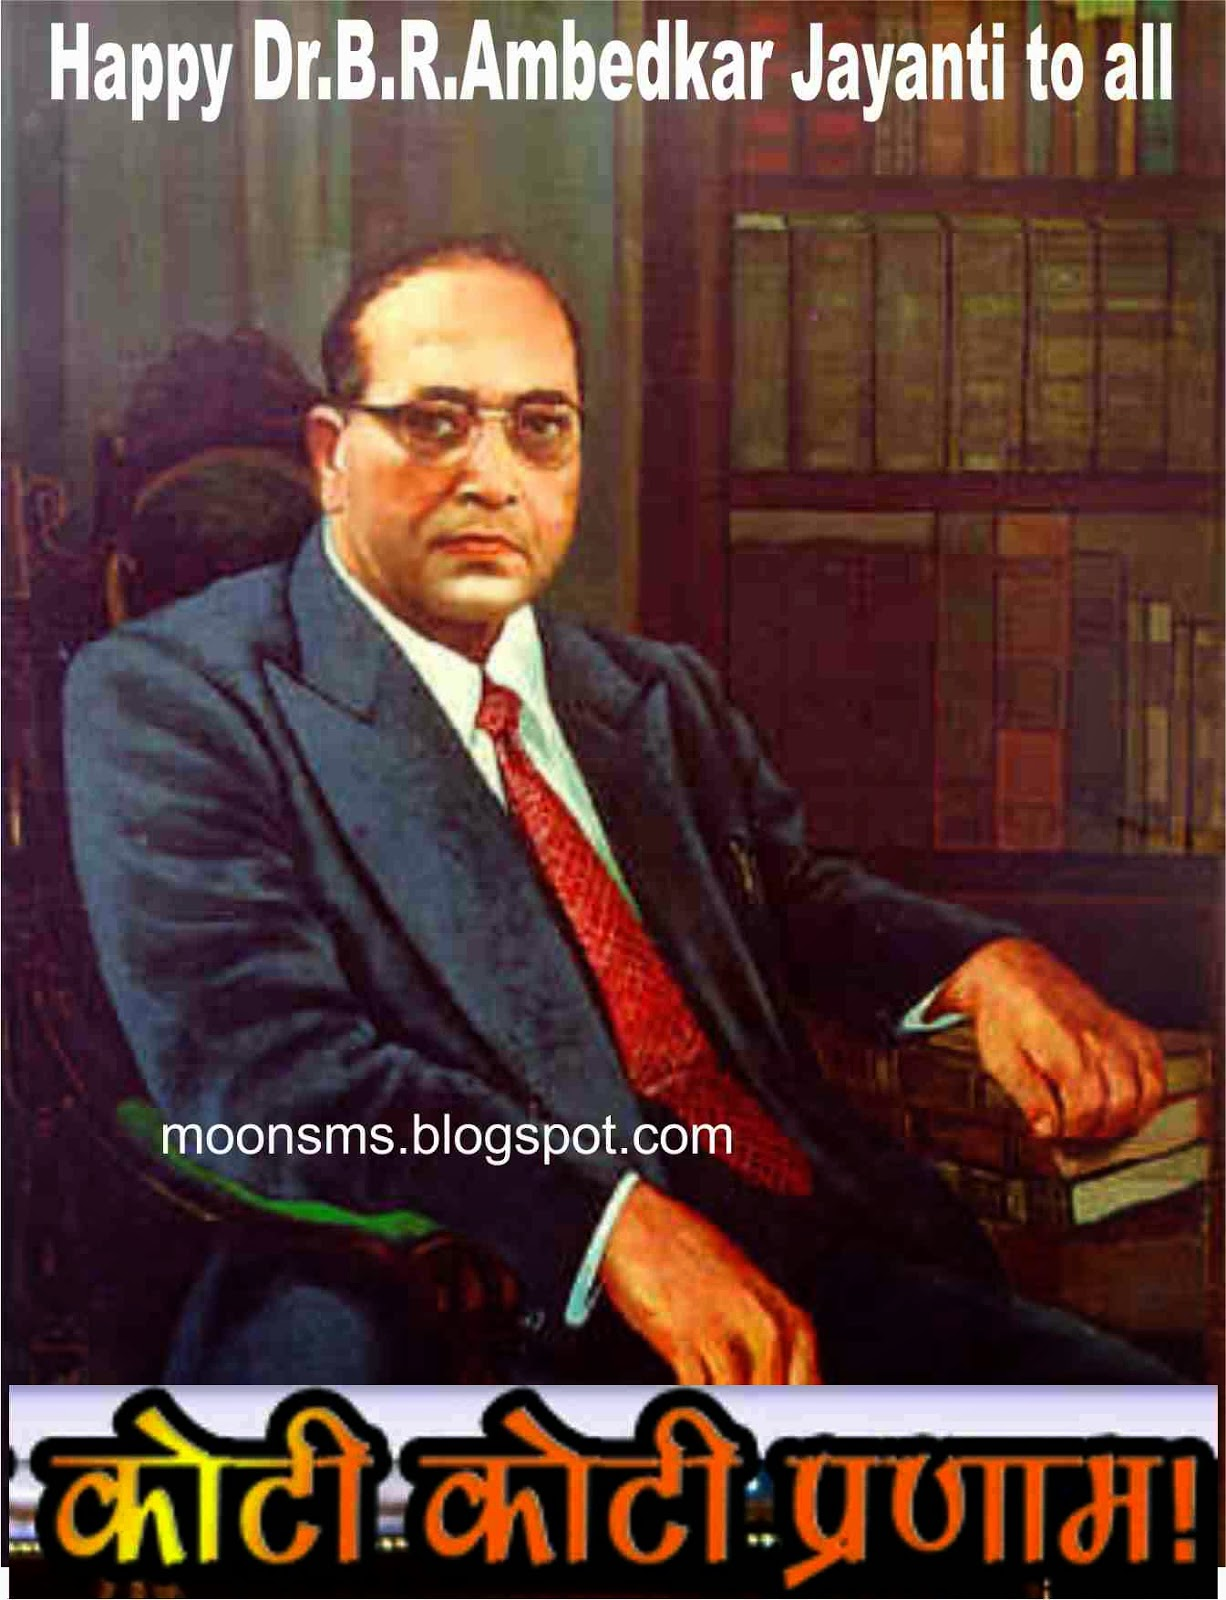 Happy Dr.Babasaheb Ambedkar Jayanti 2014 sms text message Quotes in English Hindi with gif animated images photos Hd wallpaper Greetings for Facebook whatsapp